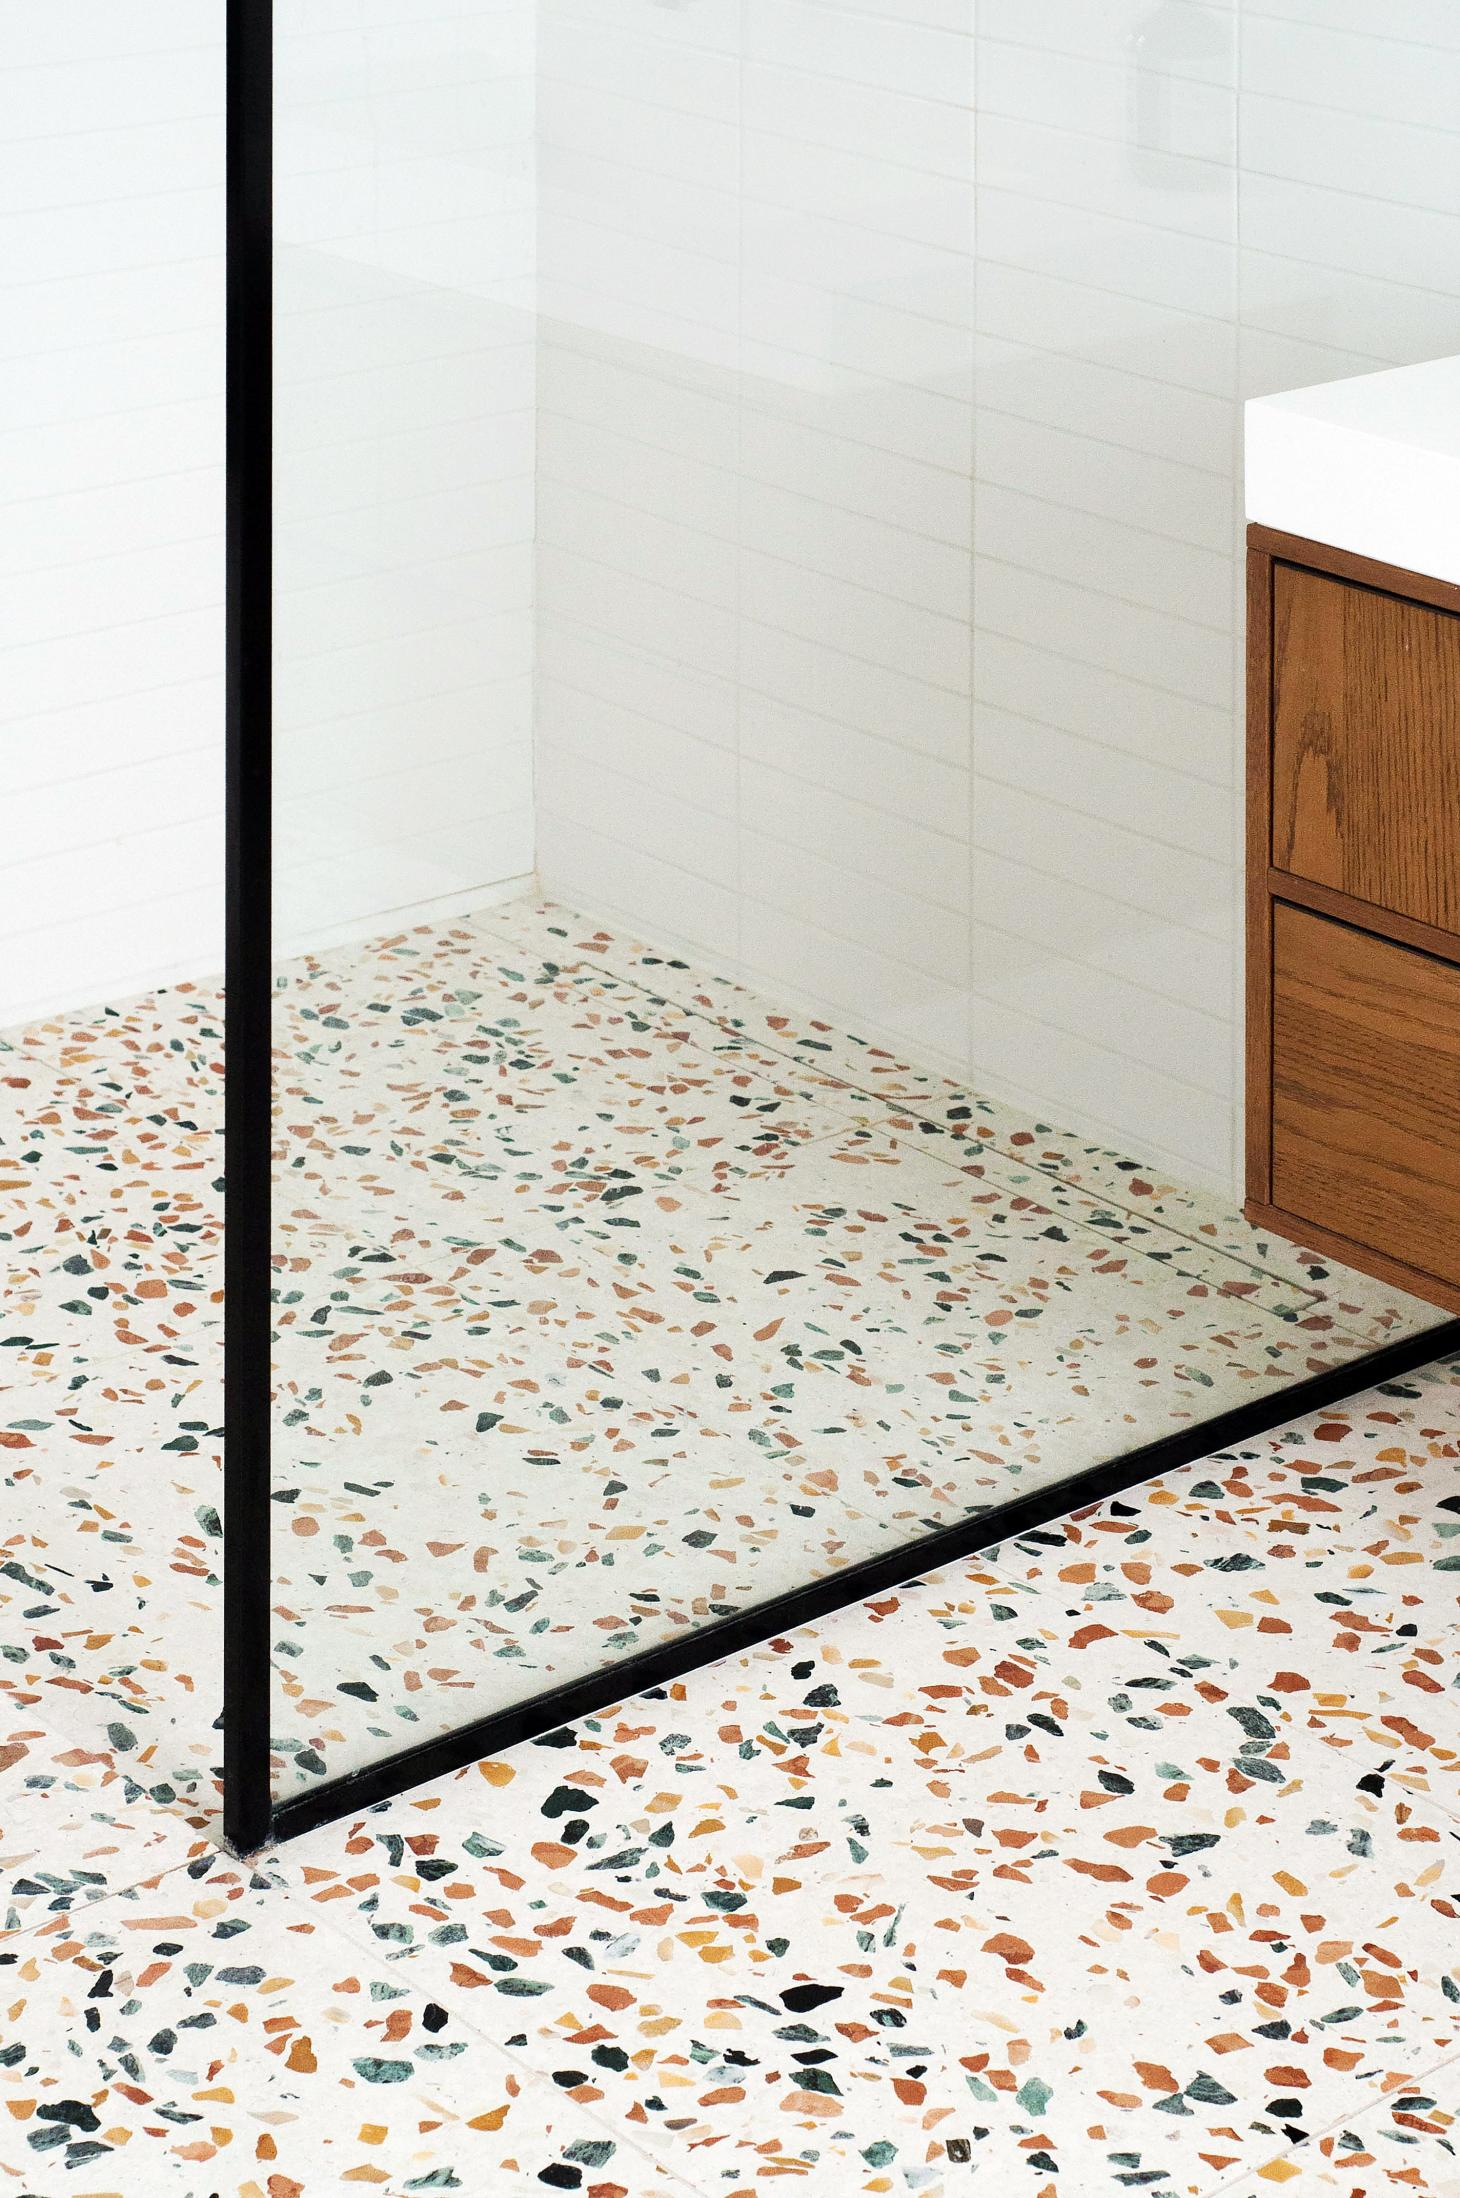 Terrazzo bathroom floor in London townhouse